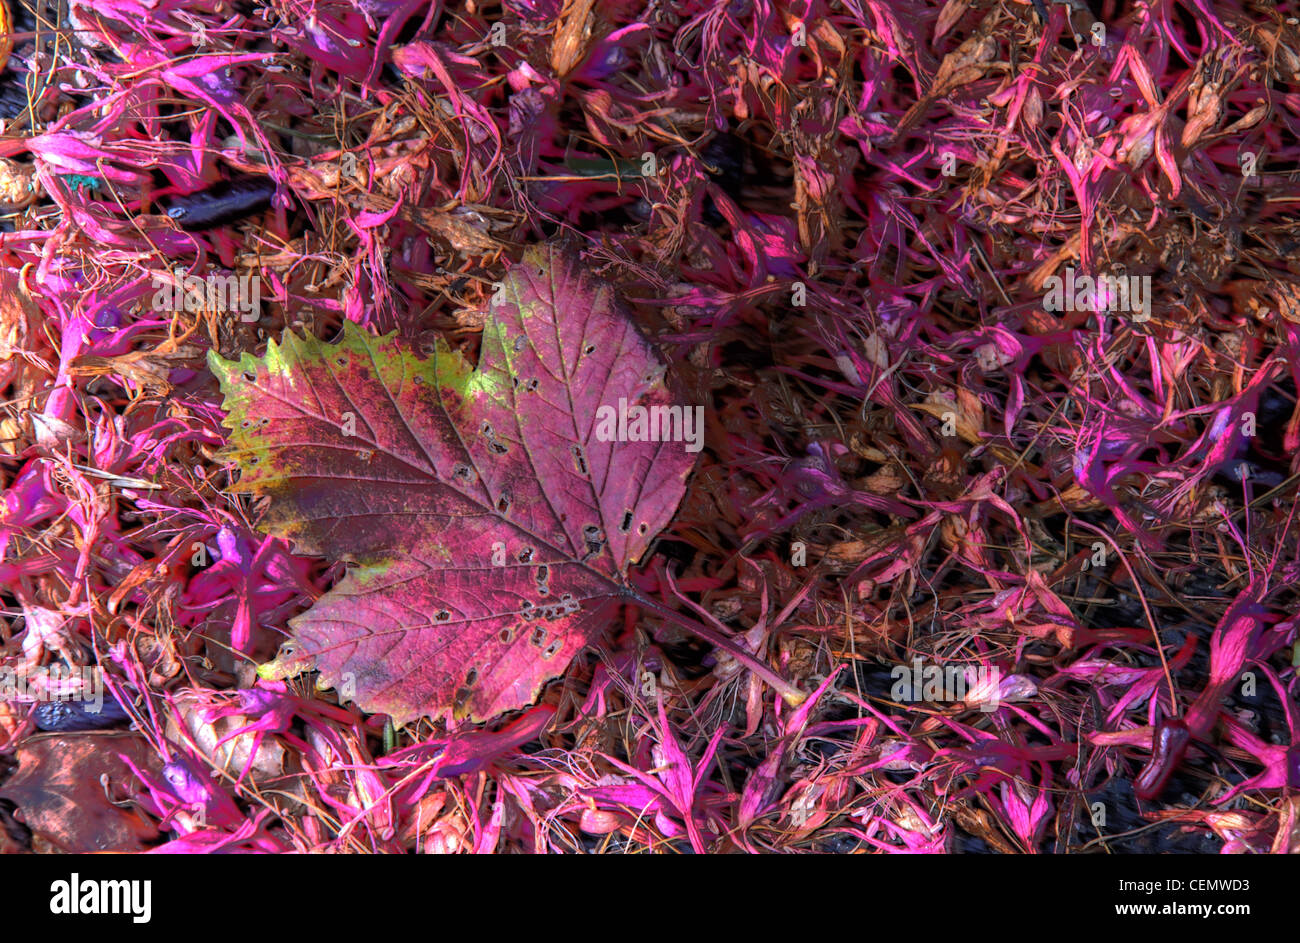 Autumn Red Pink Leaf on pink autumn fallen foliage,great,reds,and,purples,petals,flowers,shades,shade,of,purple,fall,the,fall,gotonysmith,gotonysmith,Buy Pictures of,Buy Images Of